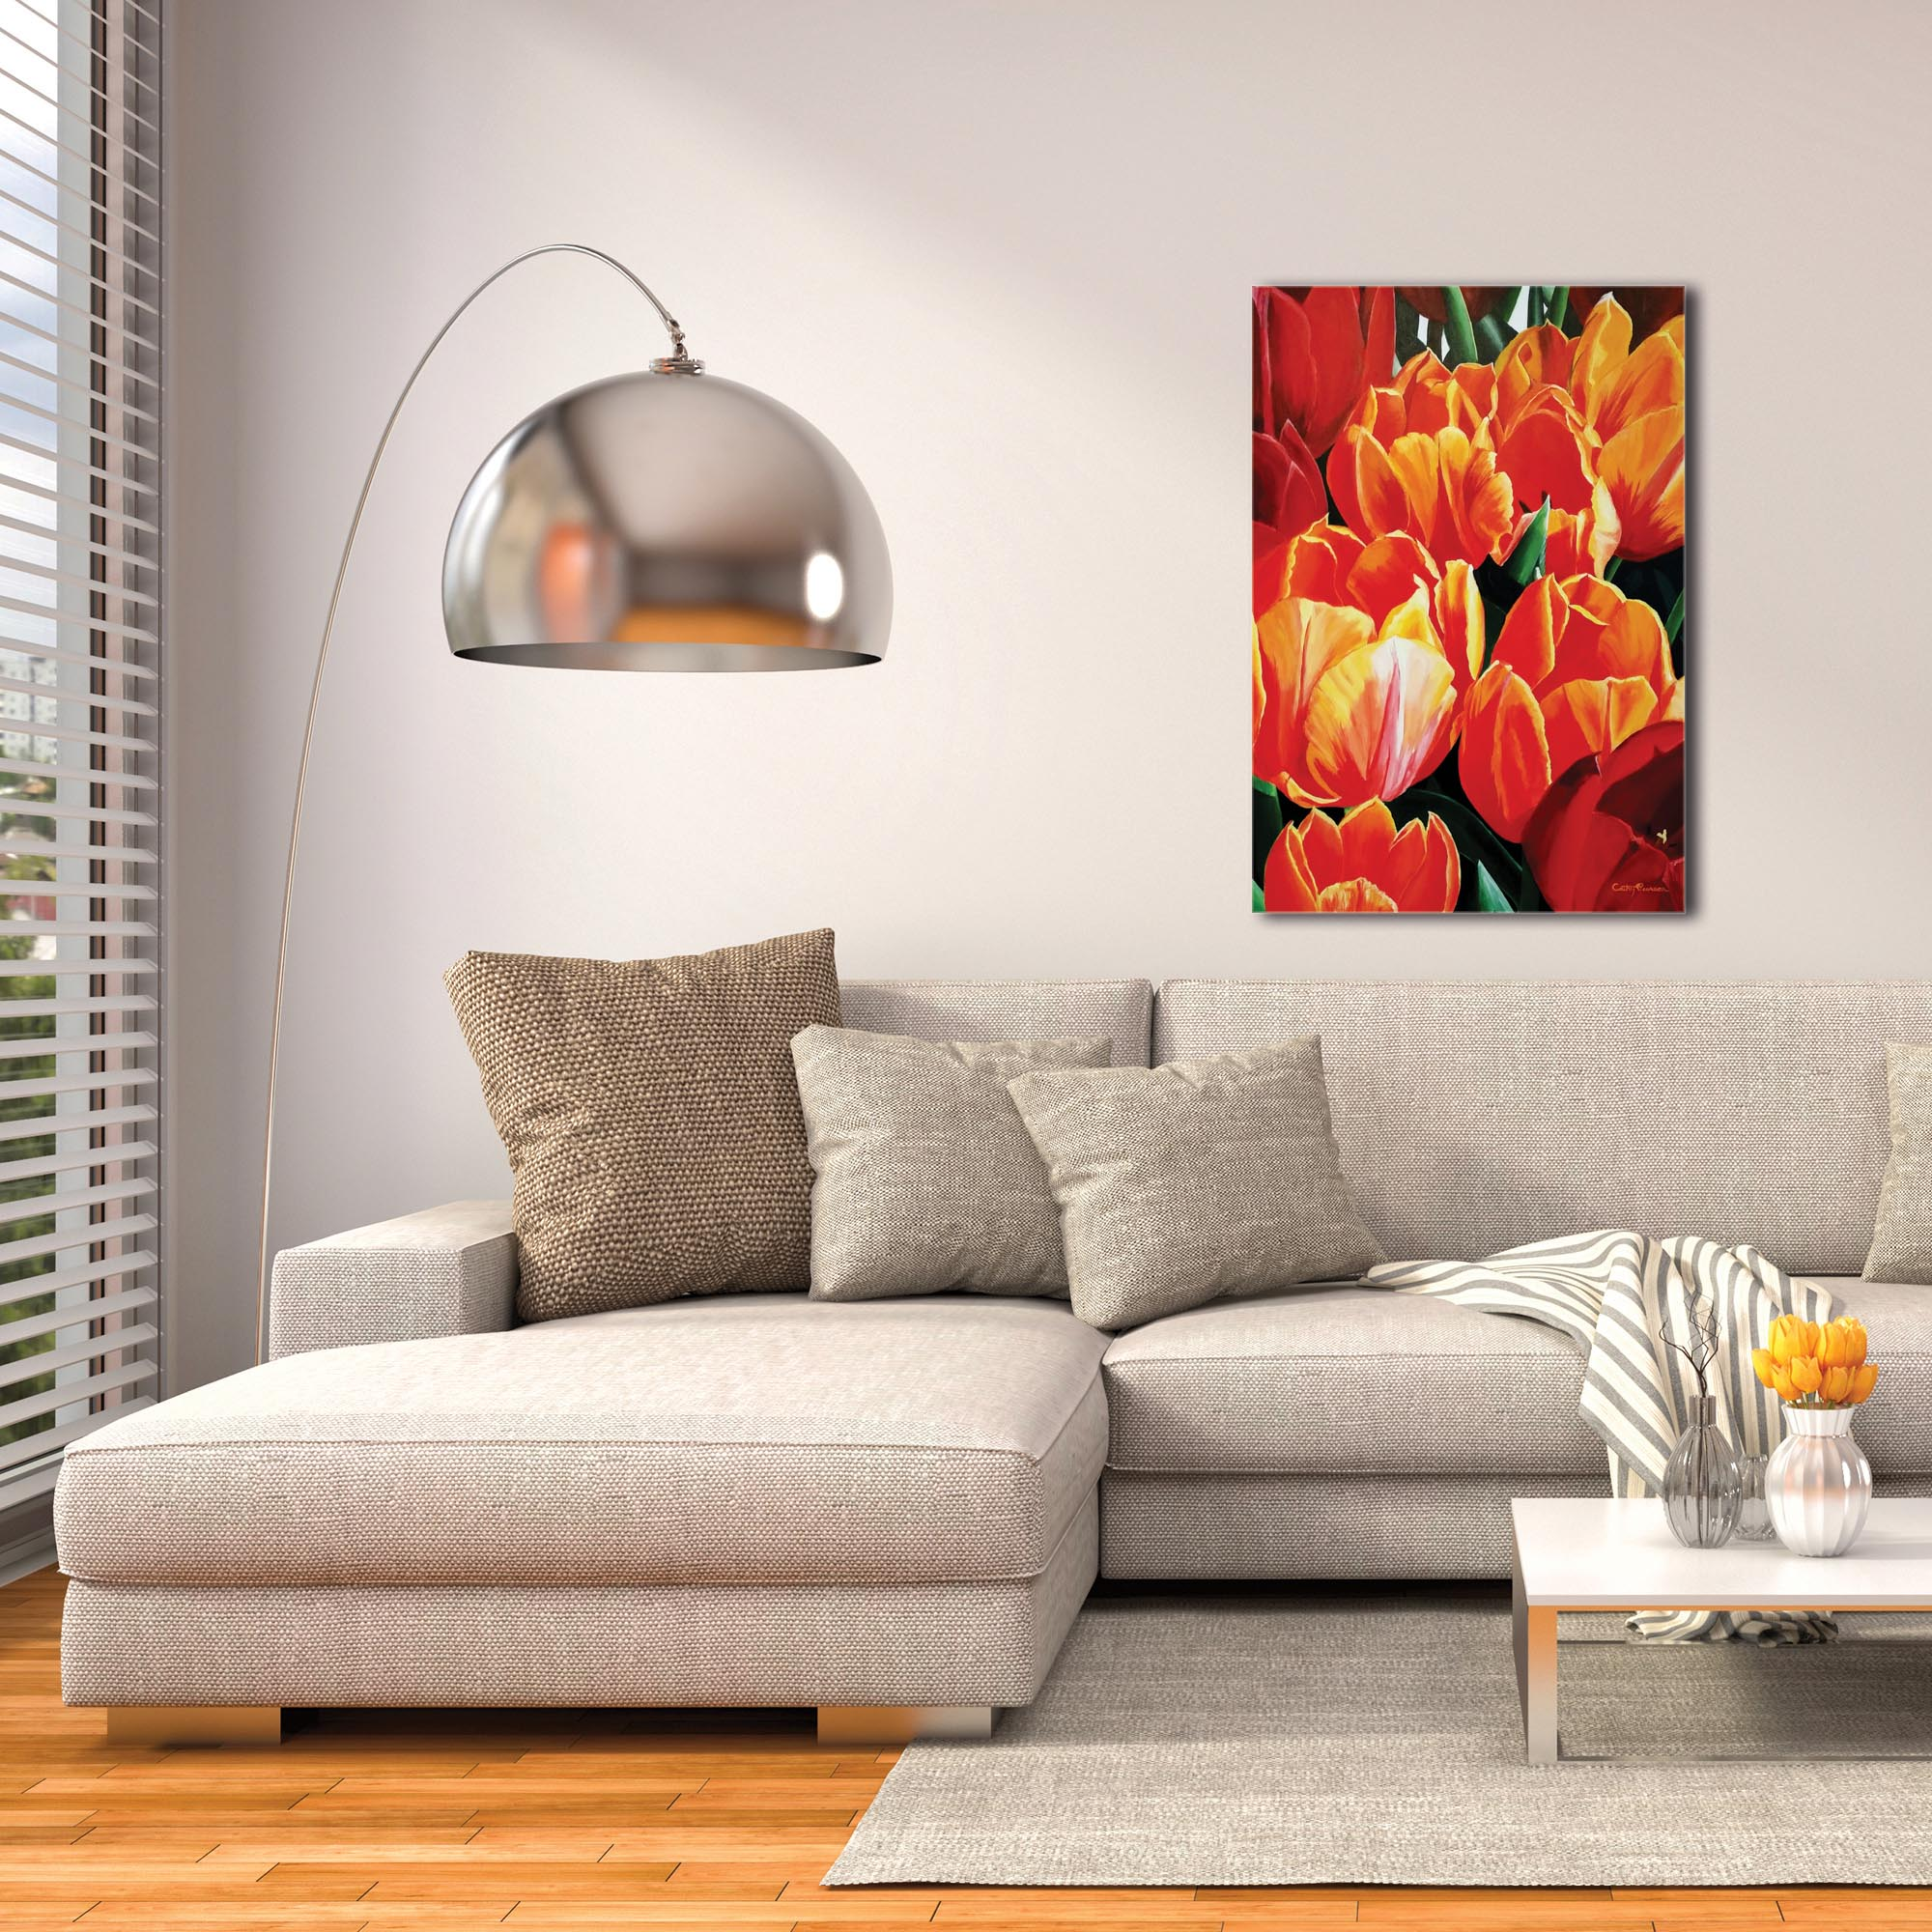 Traditional Wall Art 'Tulip Bonanza' - Floral Decor on Metal or Plexiglass - Image 3